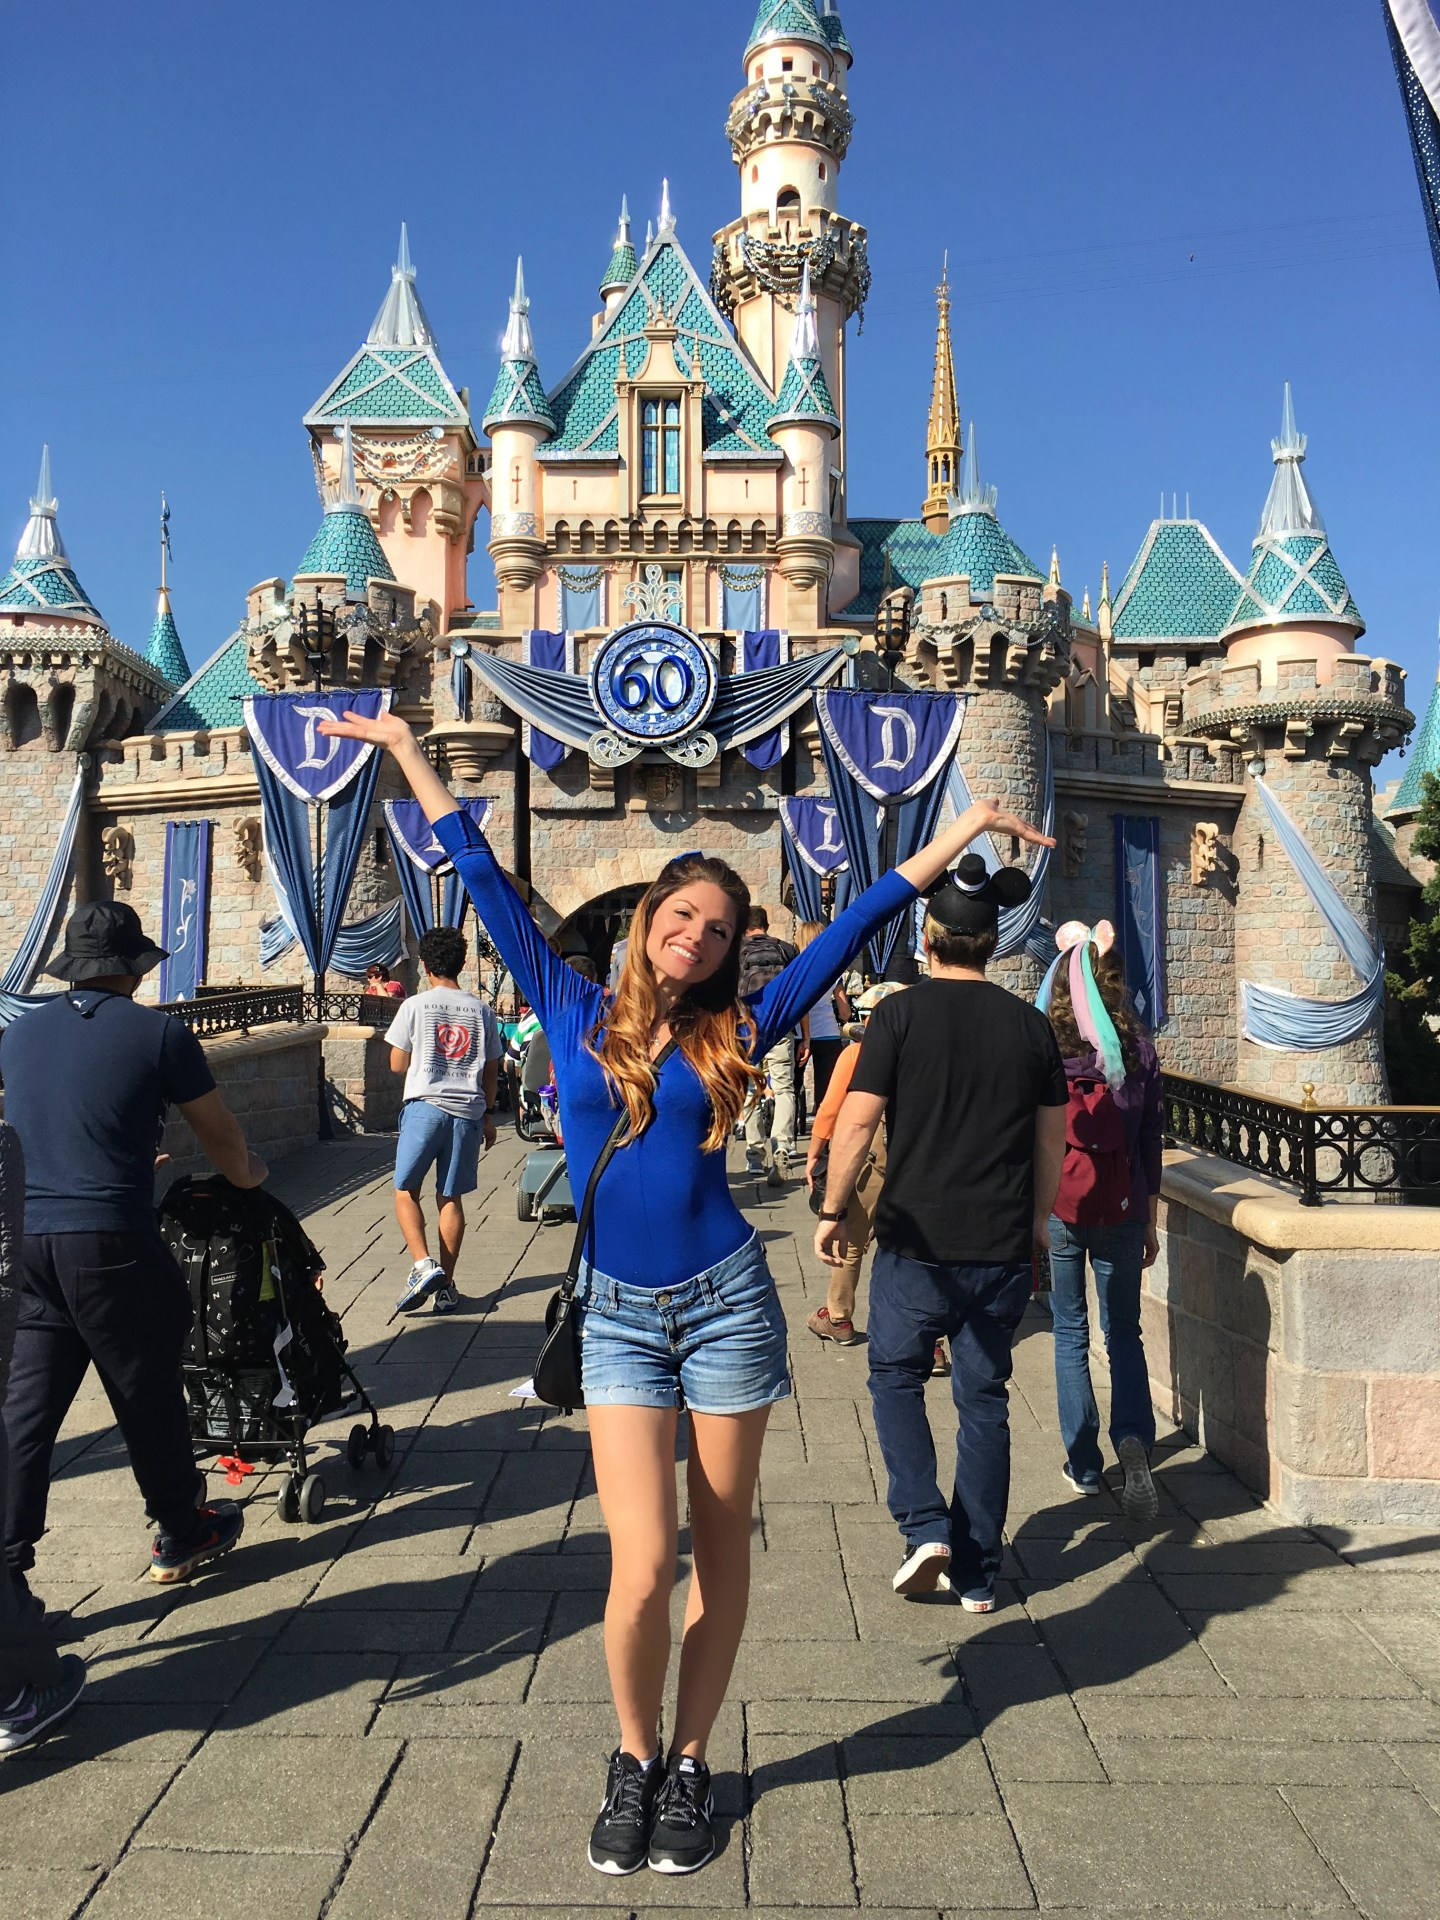 Lifestyle Blogger Jenny Meassick of Chocolate and Lace shares her travel review Disneyland and of San Diego, USA